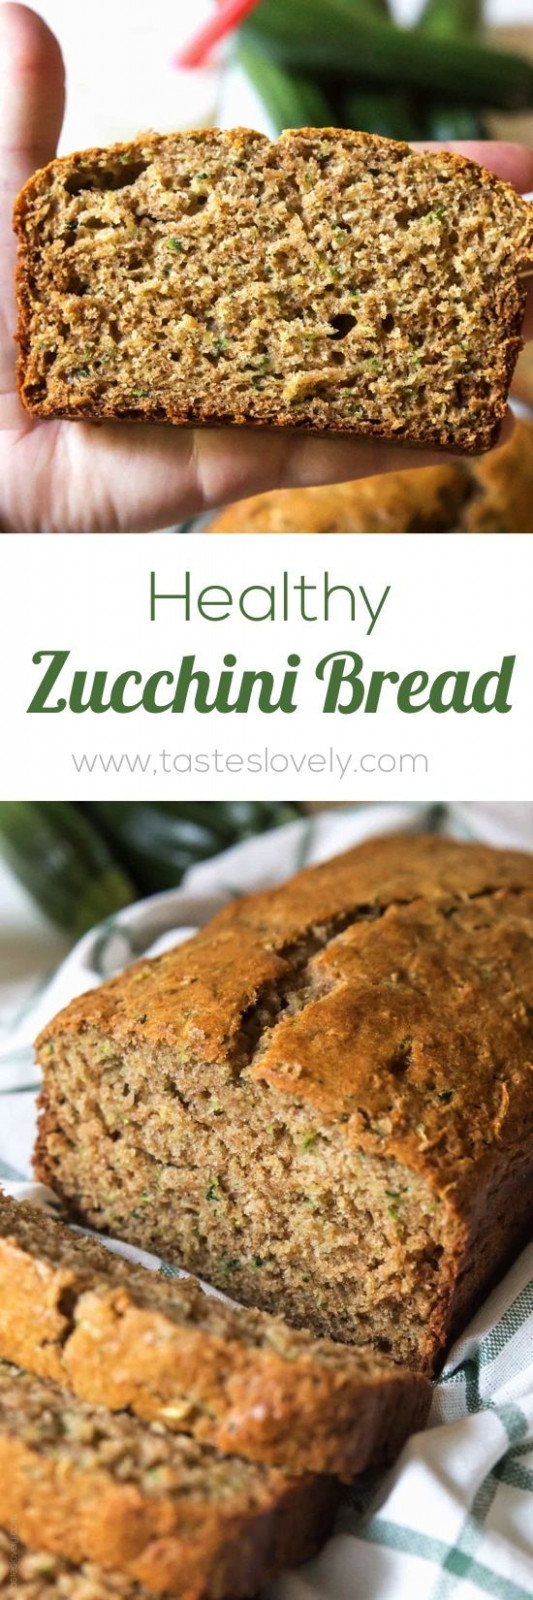 Healthy Zucchini Bread Recipe - Made With Half The Amount ..